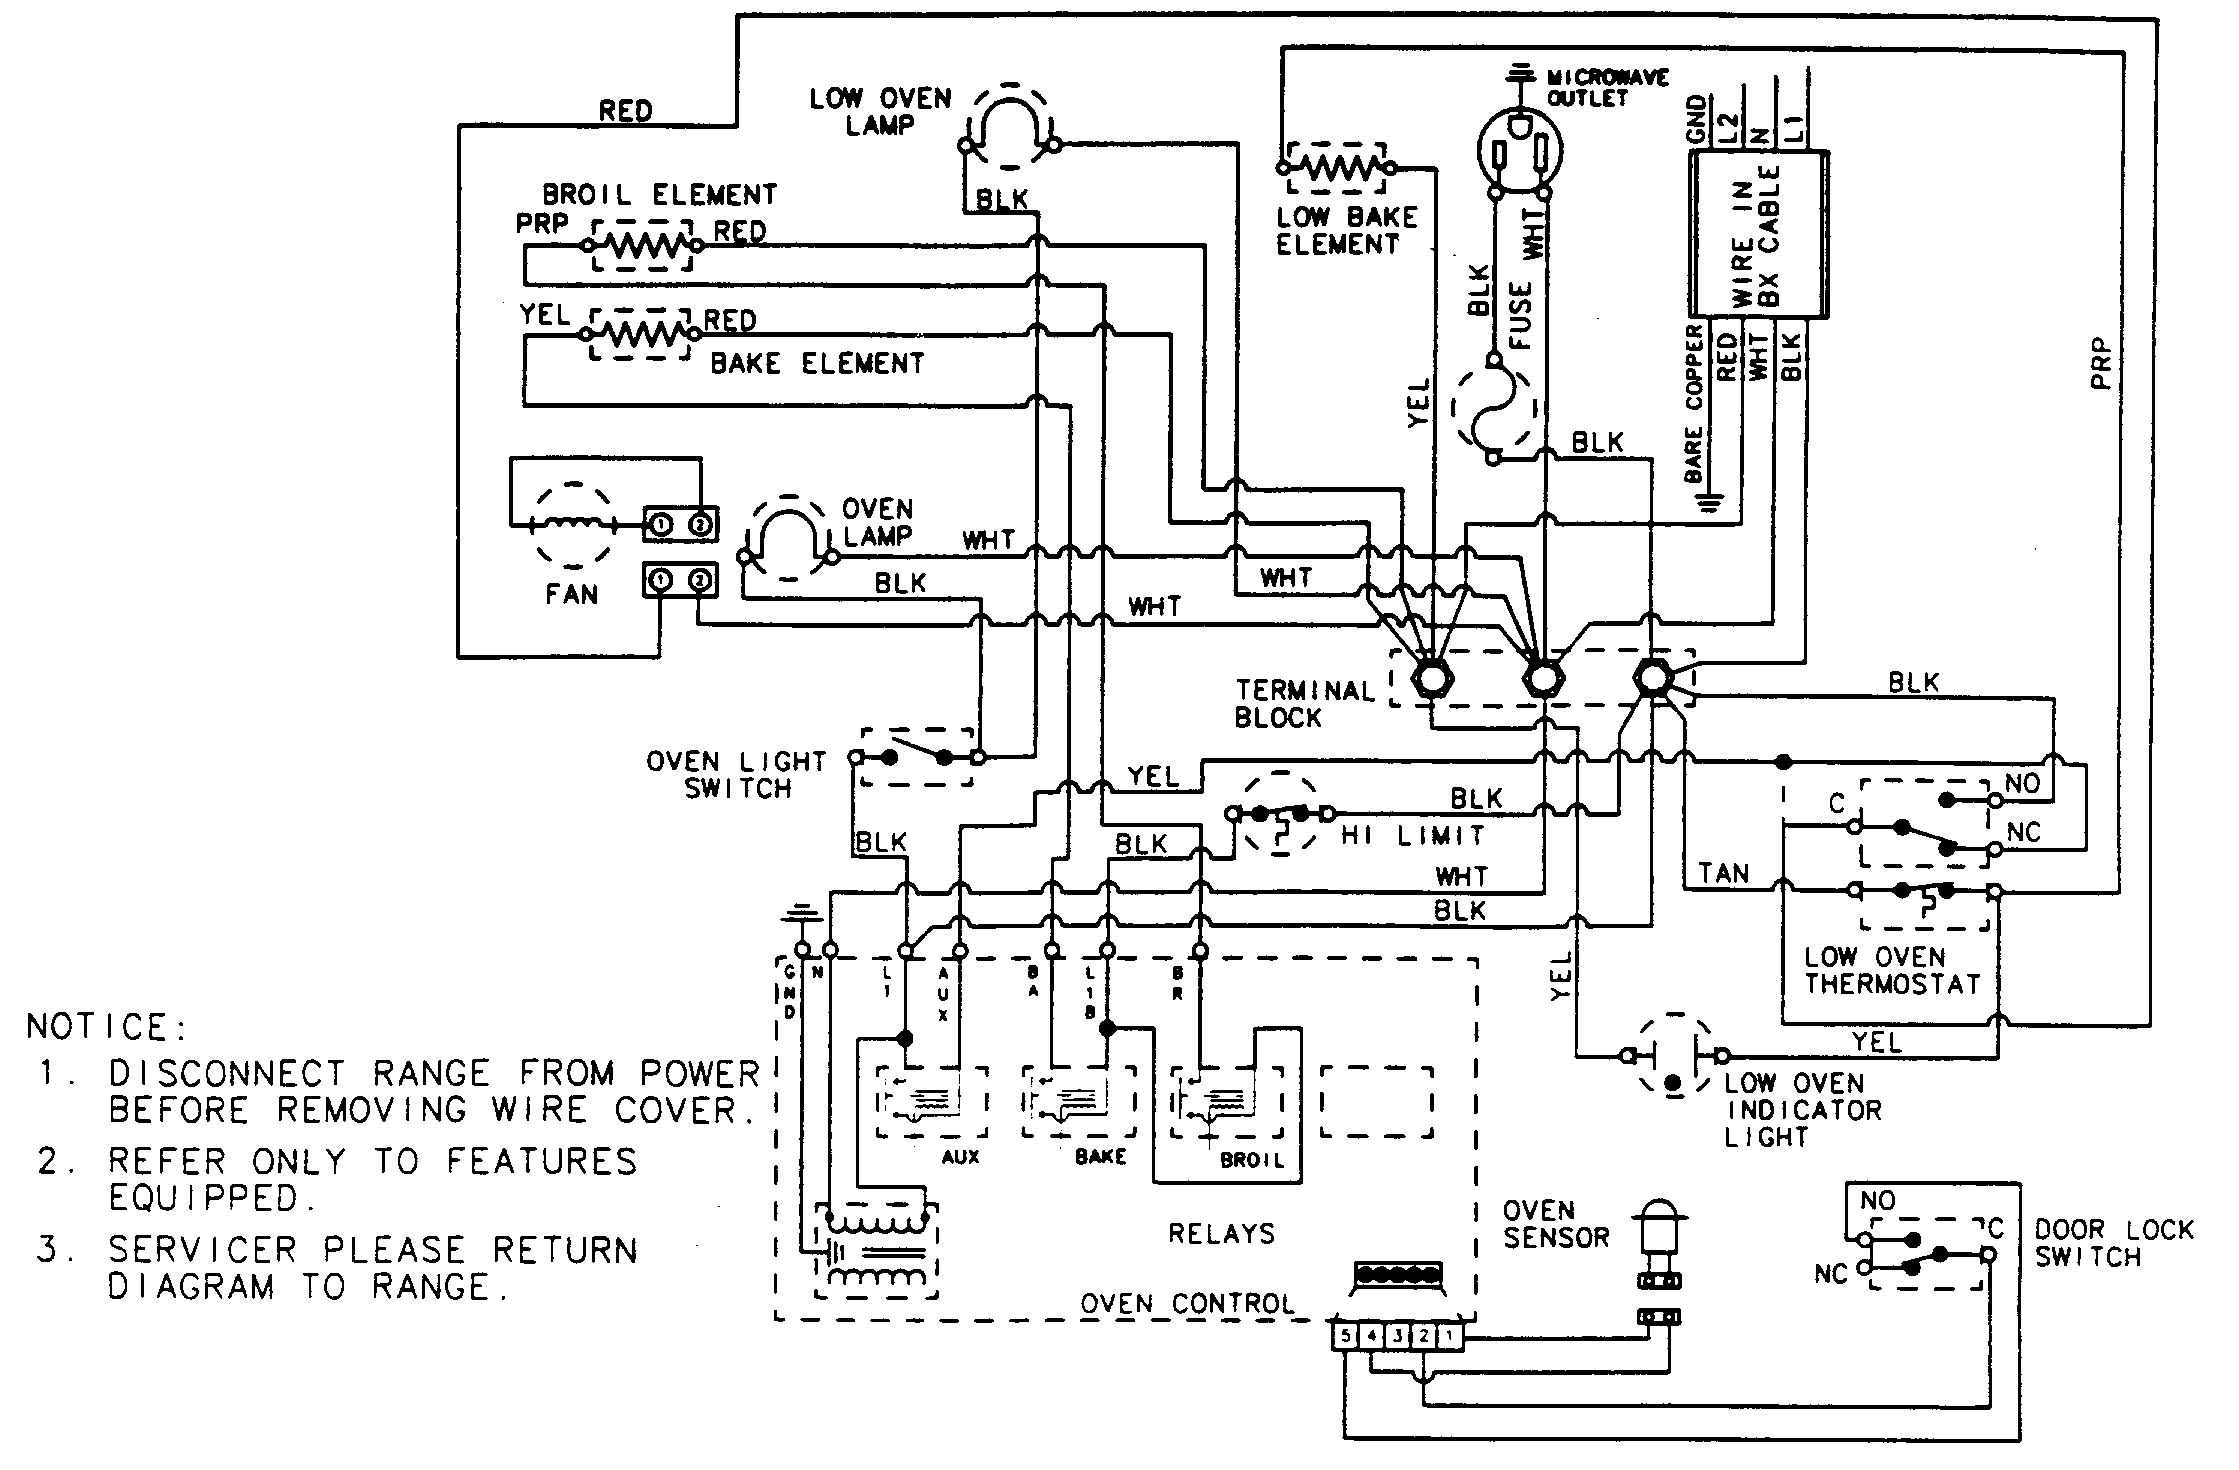 maytag refrigerator wiring diagram with Appliance on Index additionally Ice Fill Adjustment furthermore Electrical Diagram For Kenmore further Bosch Dishwasher Parts Ge also Wiring Diagram Electric Brake Controller.